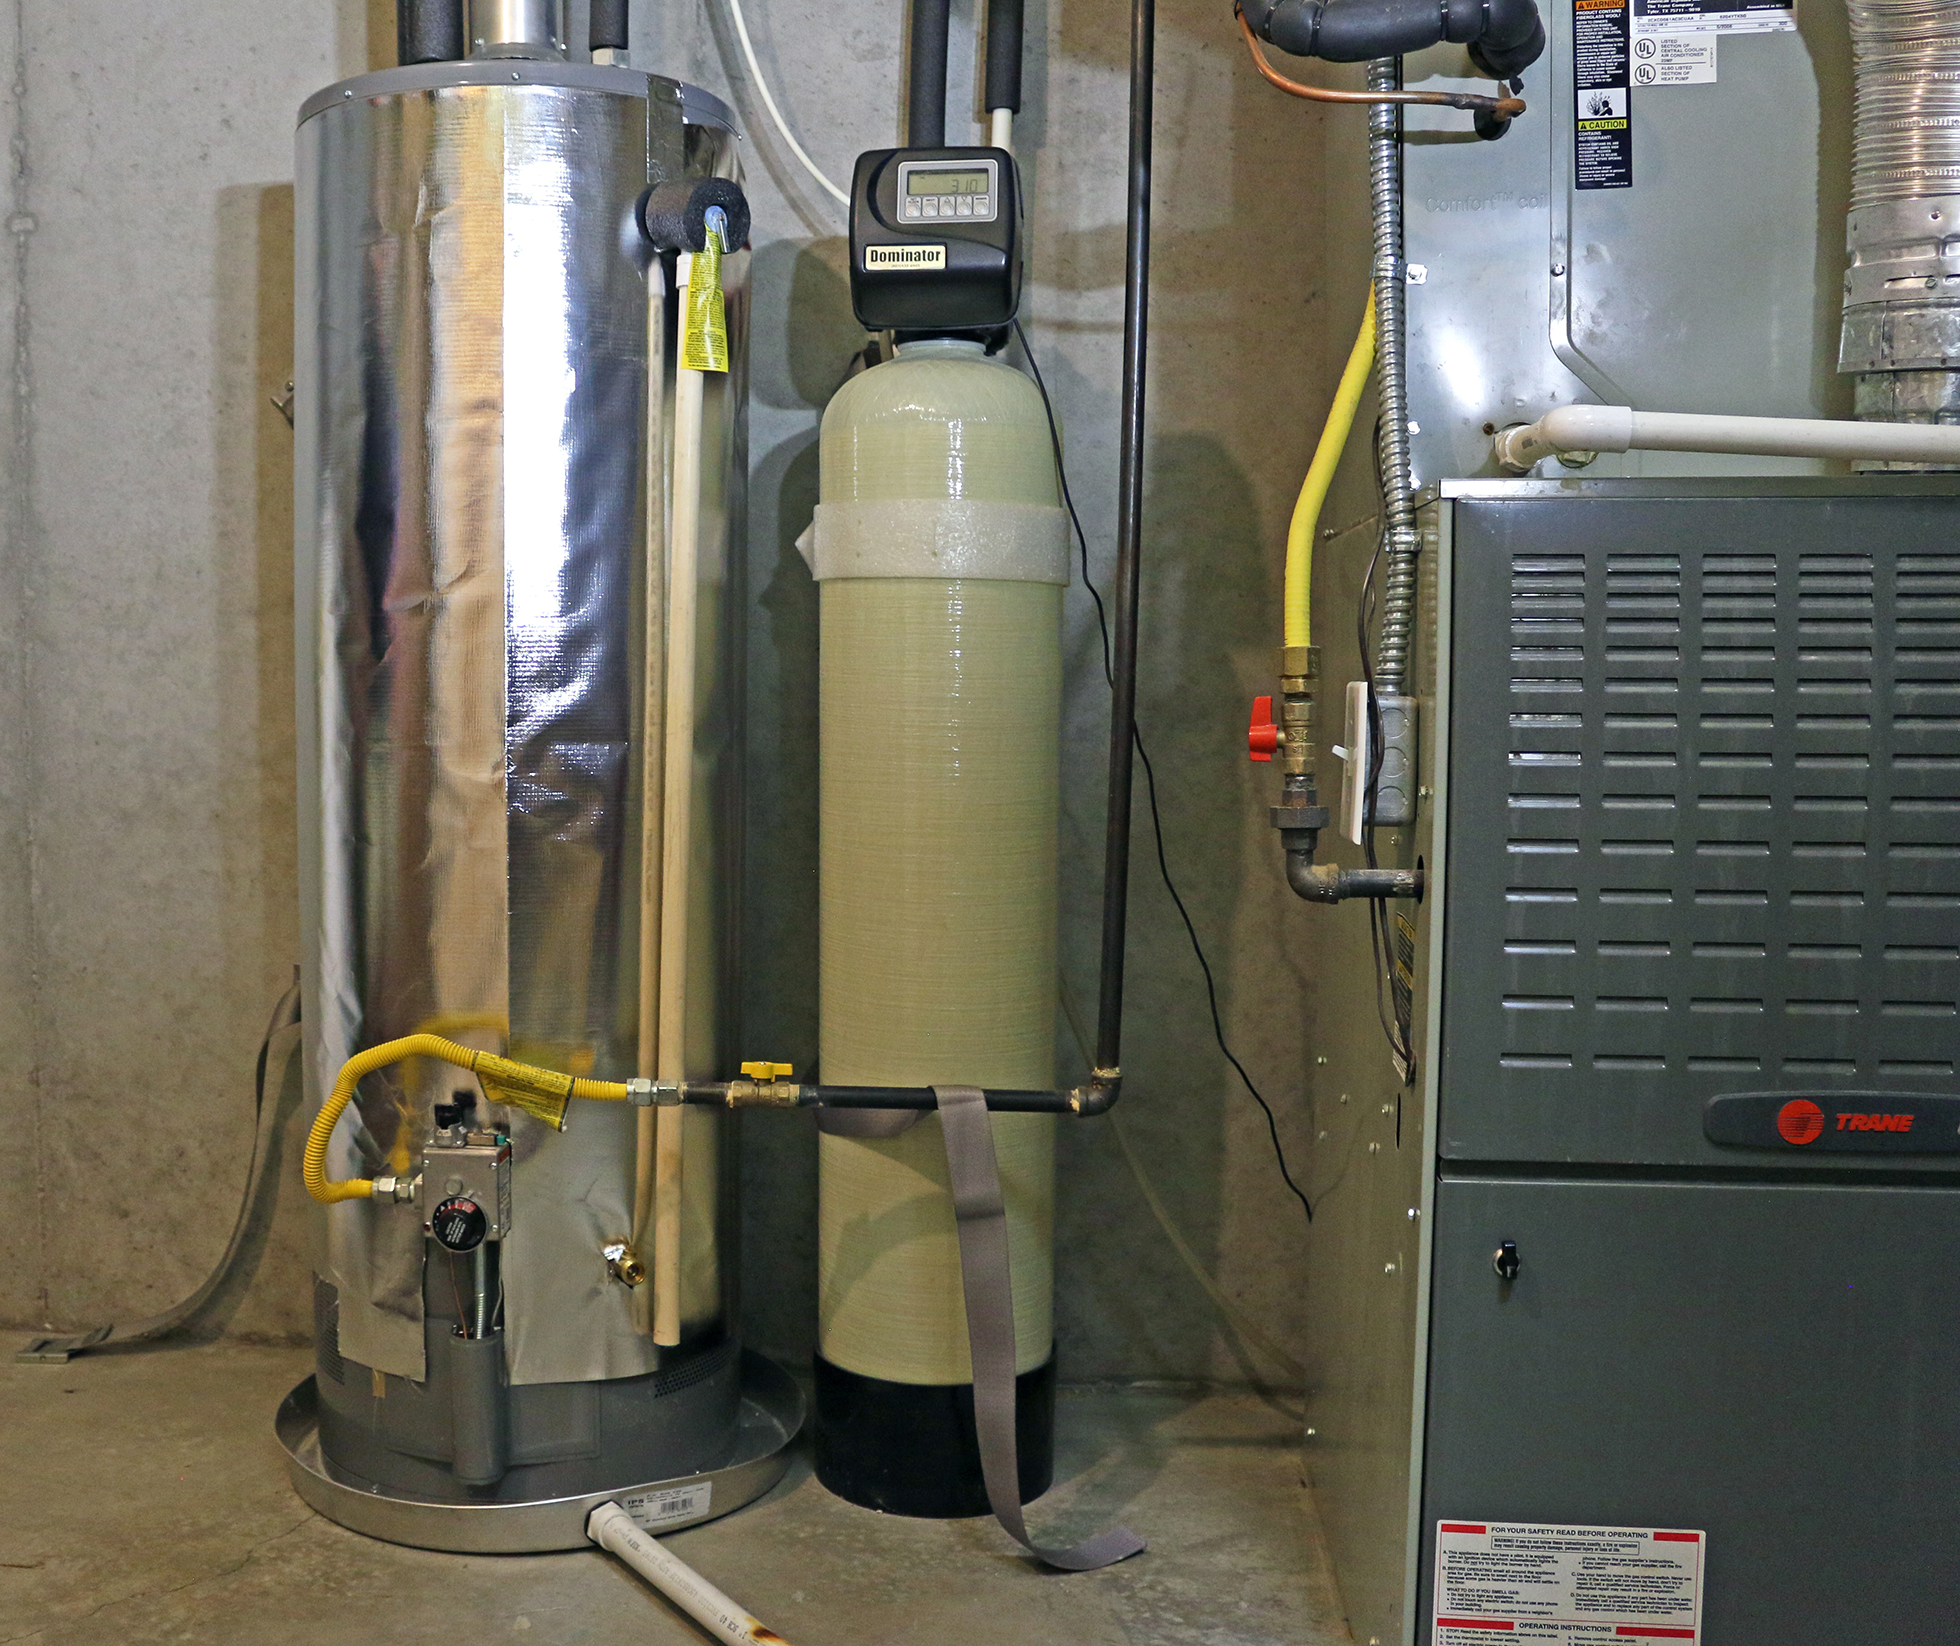 Basement water heater wrapped in silver insulation blanket